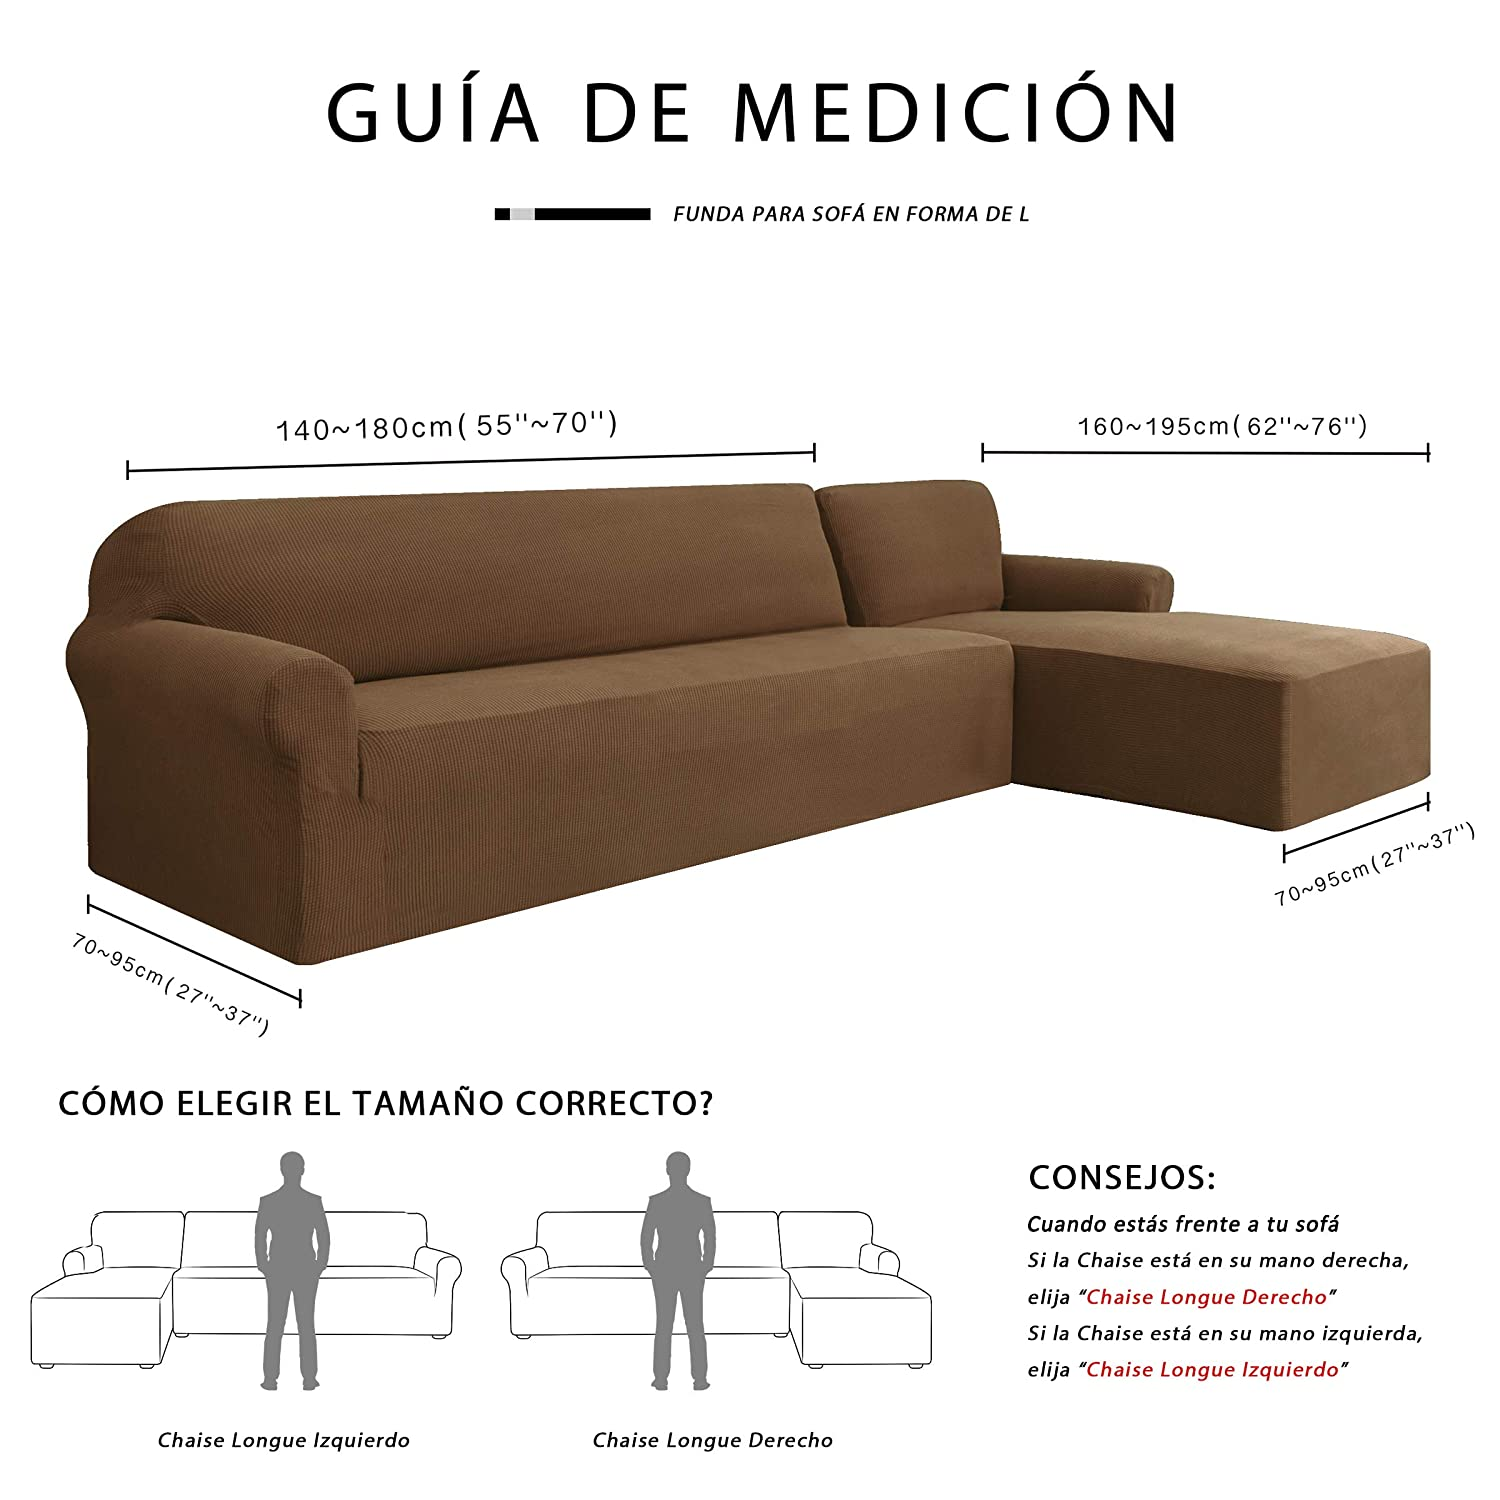 subrtex Funda Sofa Chaise Longue Brazo Derecho Elastica Largo Protector para Sofa Chaise Longue Derecha Antimanchas Ajustable (Marron)